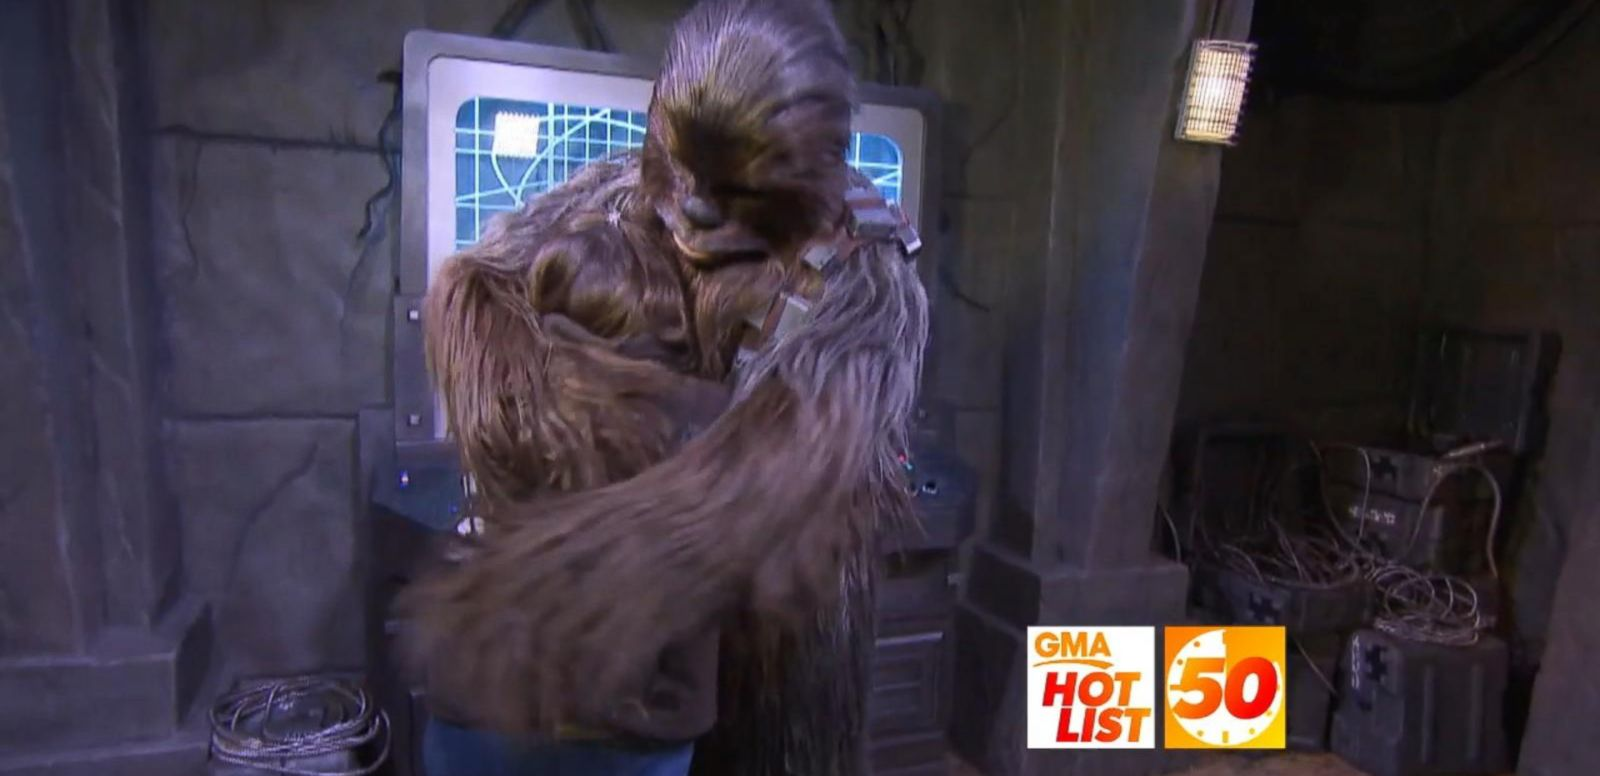 VIDEO: 'GMA' Hot List: 'Chewbacca' Mom Visits Disney, Ballet Dancers Dance to Hip Hop